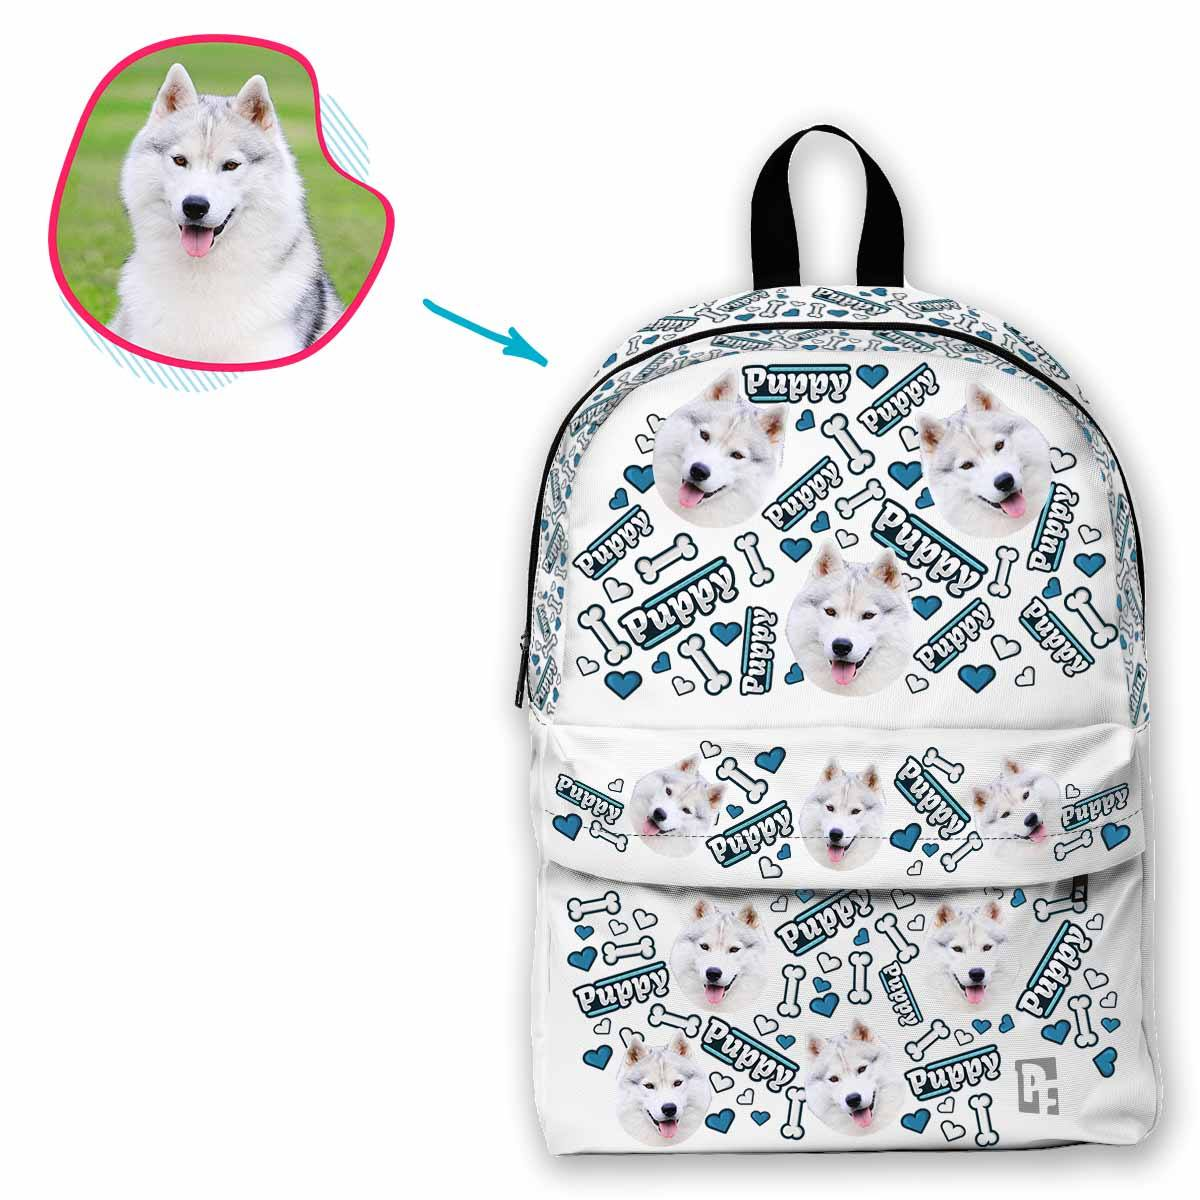 white Puppy classic backpack personalized with photo of face printed on it